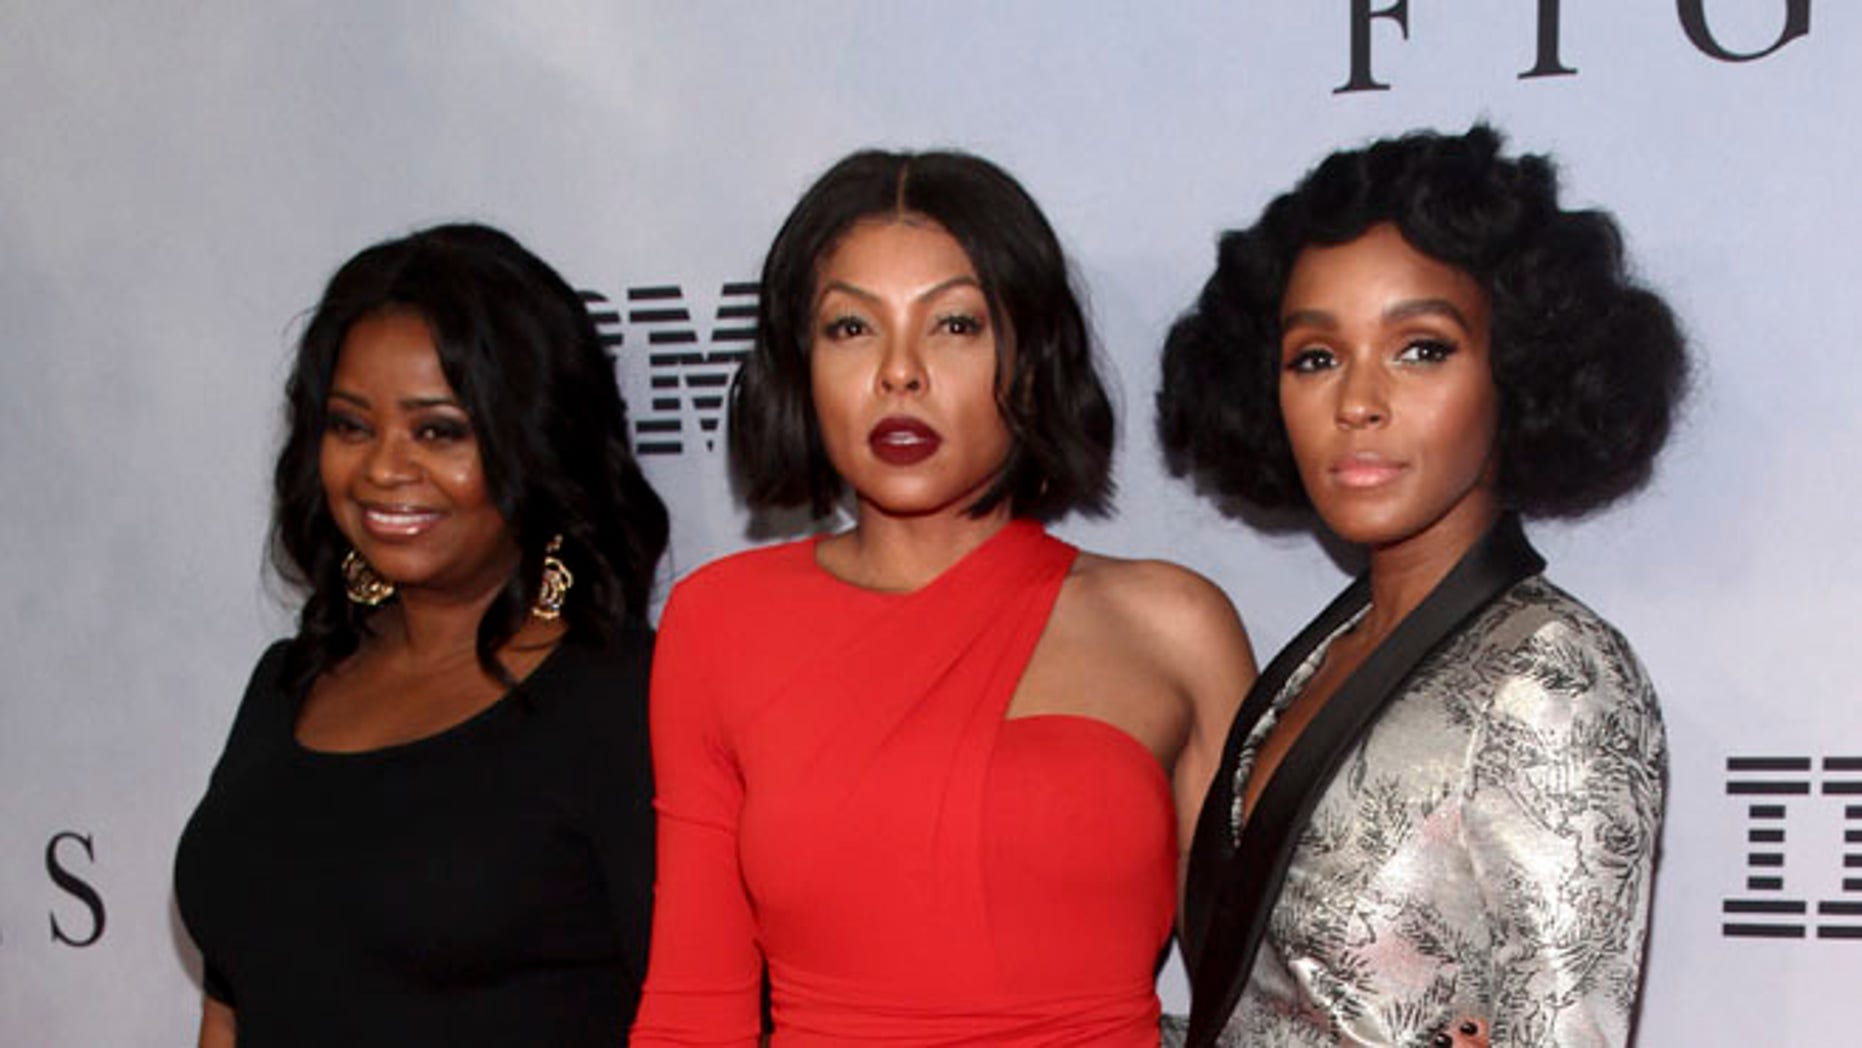 """John Glenn was fondly remembered by the """"Hidden Figures"""" cast at a New York premiere. From left Octavia Specer, Taraji P. Henson and Janelle Monae"""